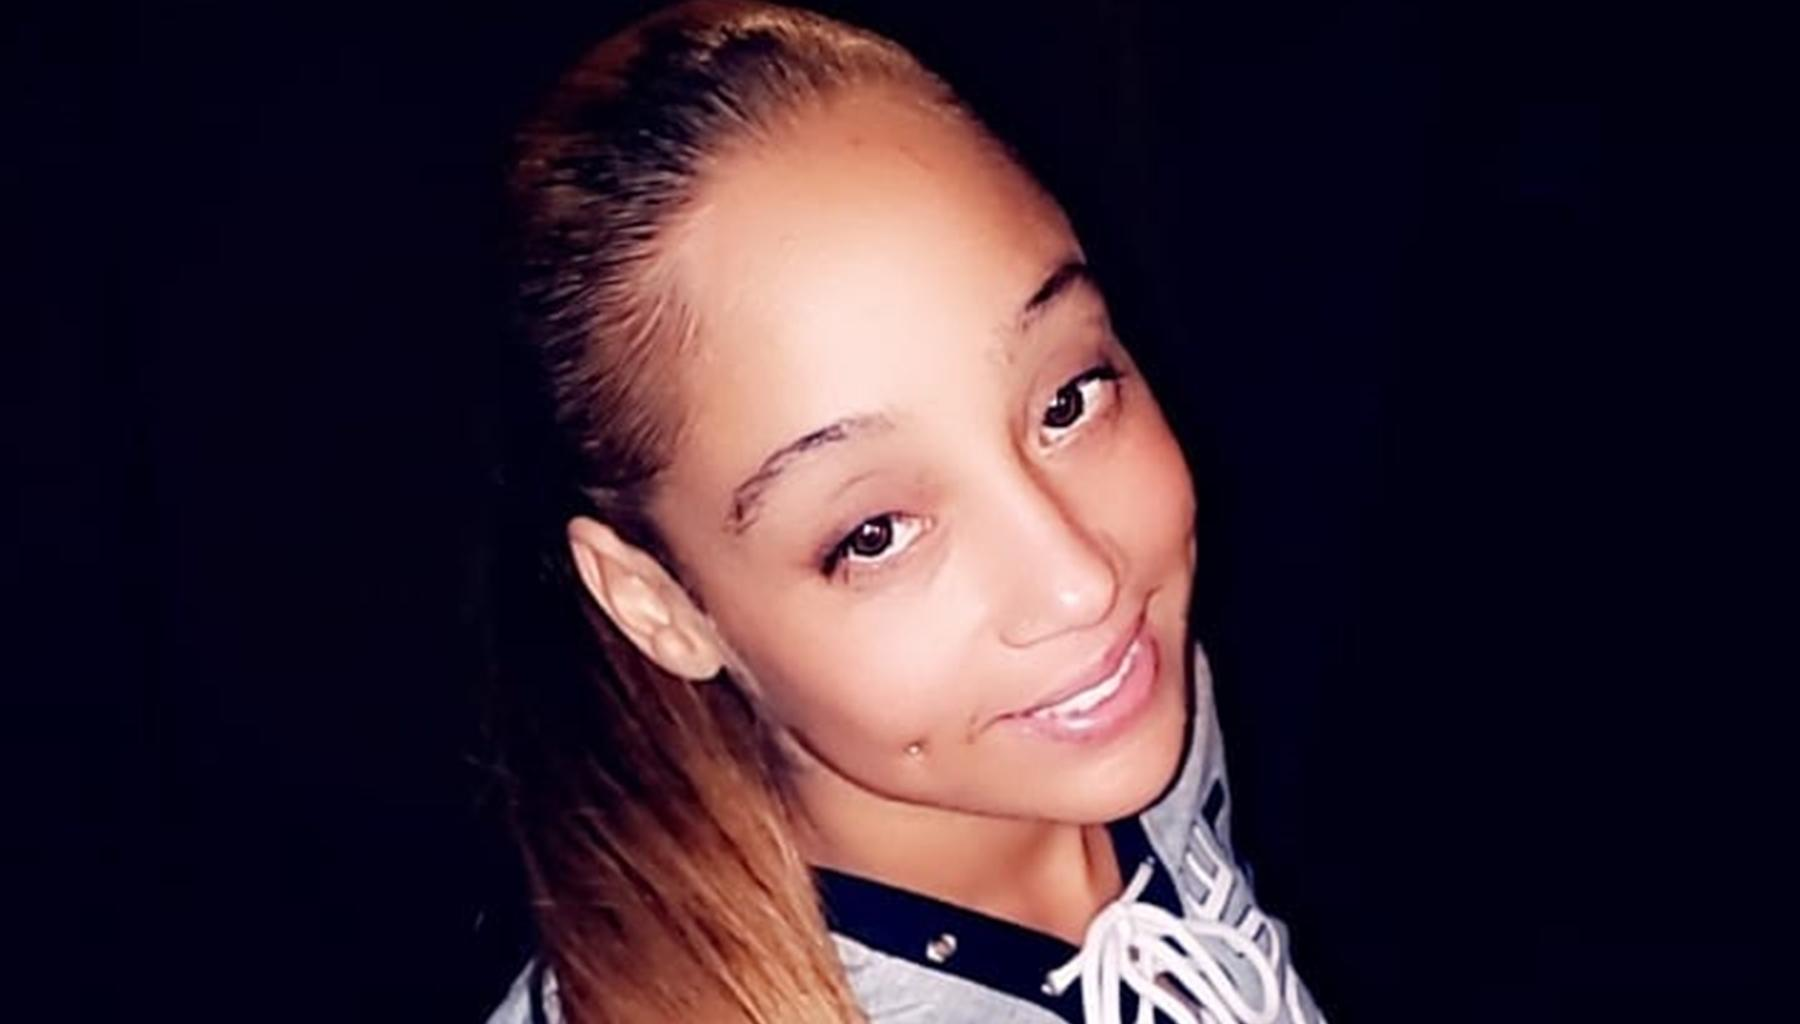 Nipsey Hussle's Baby Mama, Tanisha Foster AKA Chyna Hussle, Shares Never-Before-Seen Photo Of The Late Rapper, And Blasts People Trying To Get Money Using Her Daughter, Emani Asghedom's Name